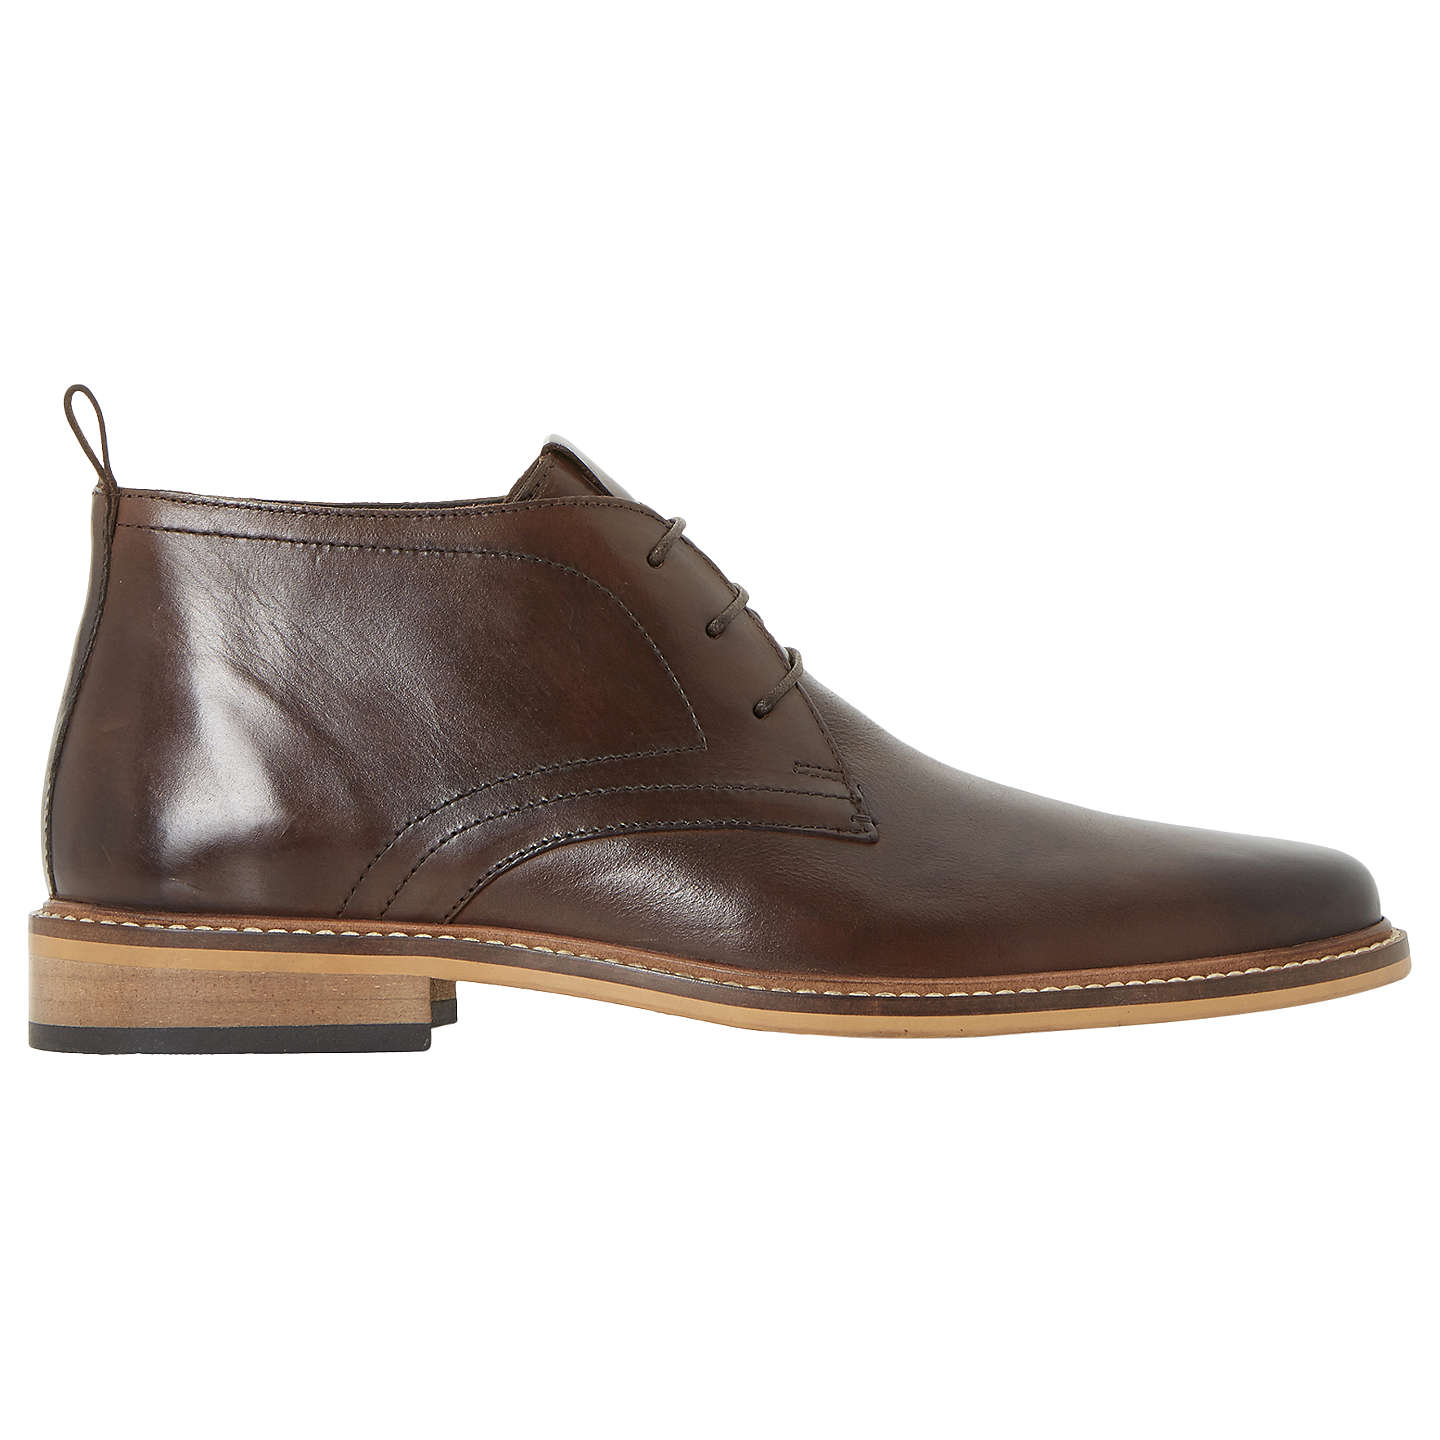 BuyDune Malta Lace Up Leather Boots, Brown, 6 Online at johnlewis.com ...